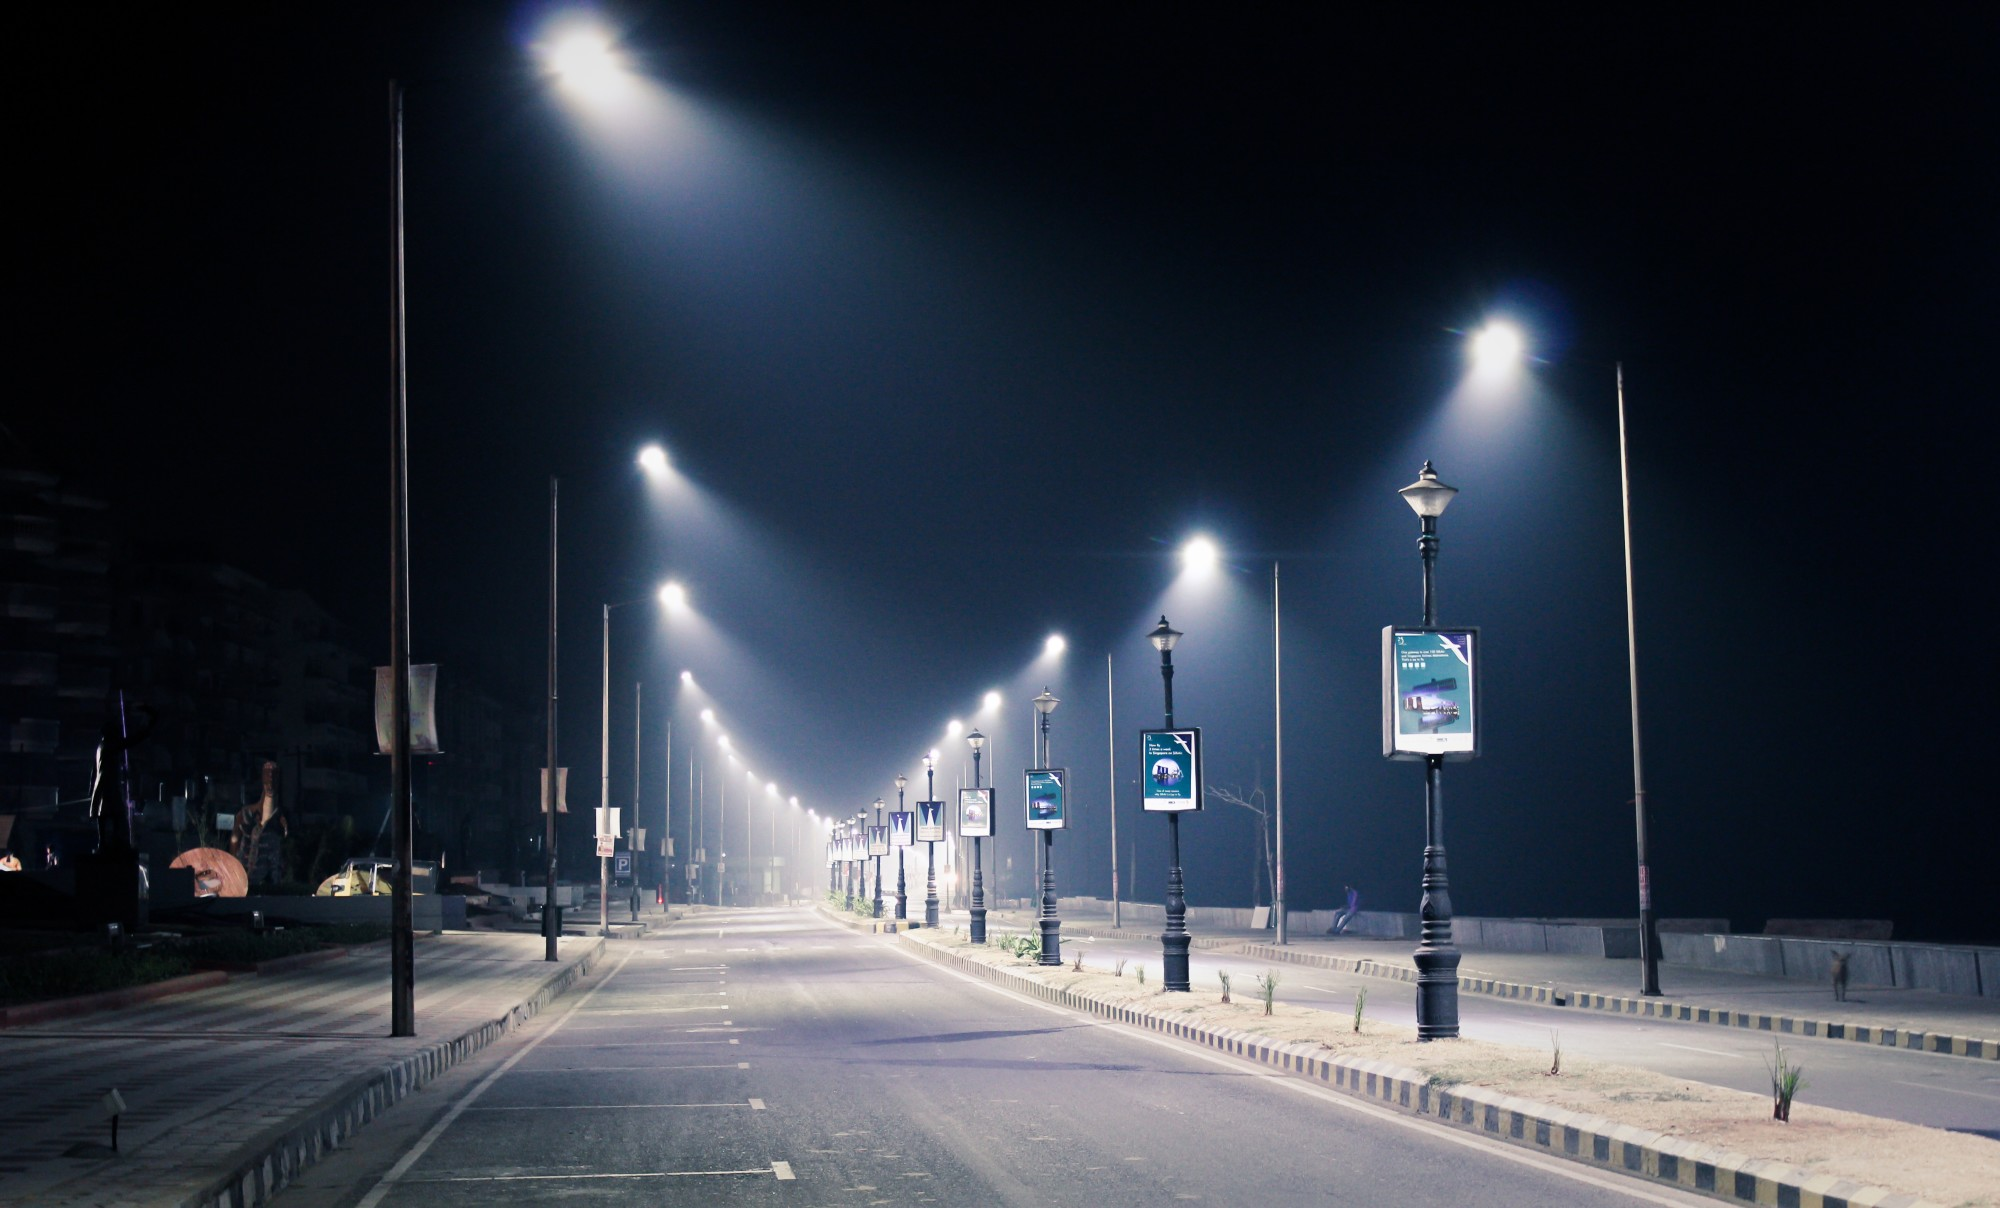 streetlights turned on at night with lamp posts